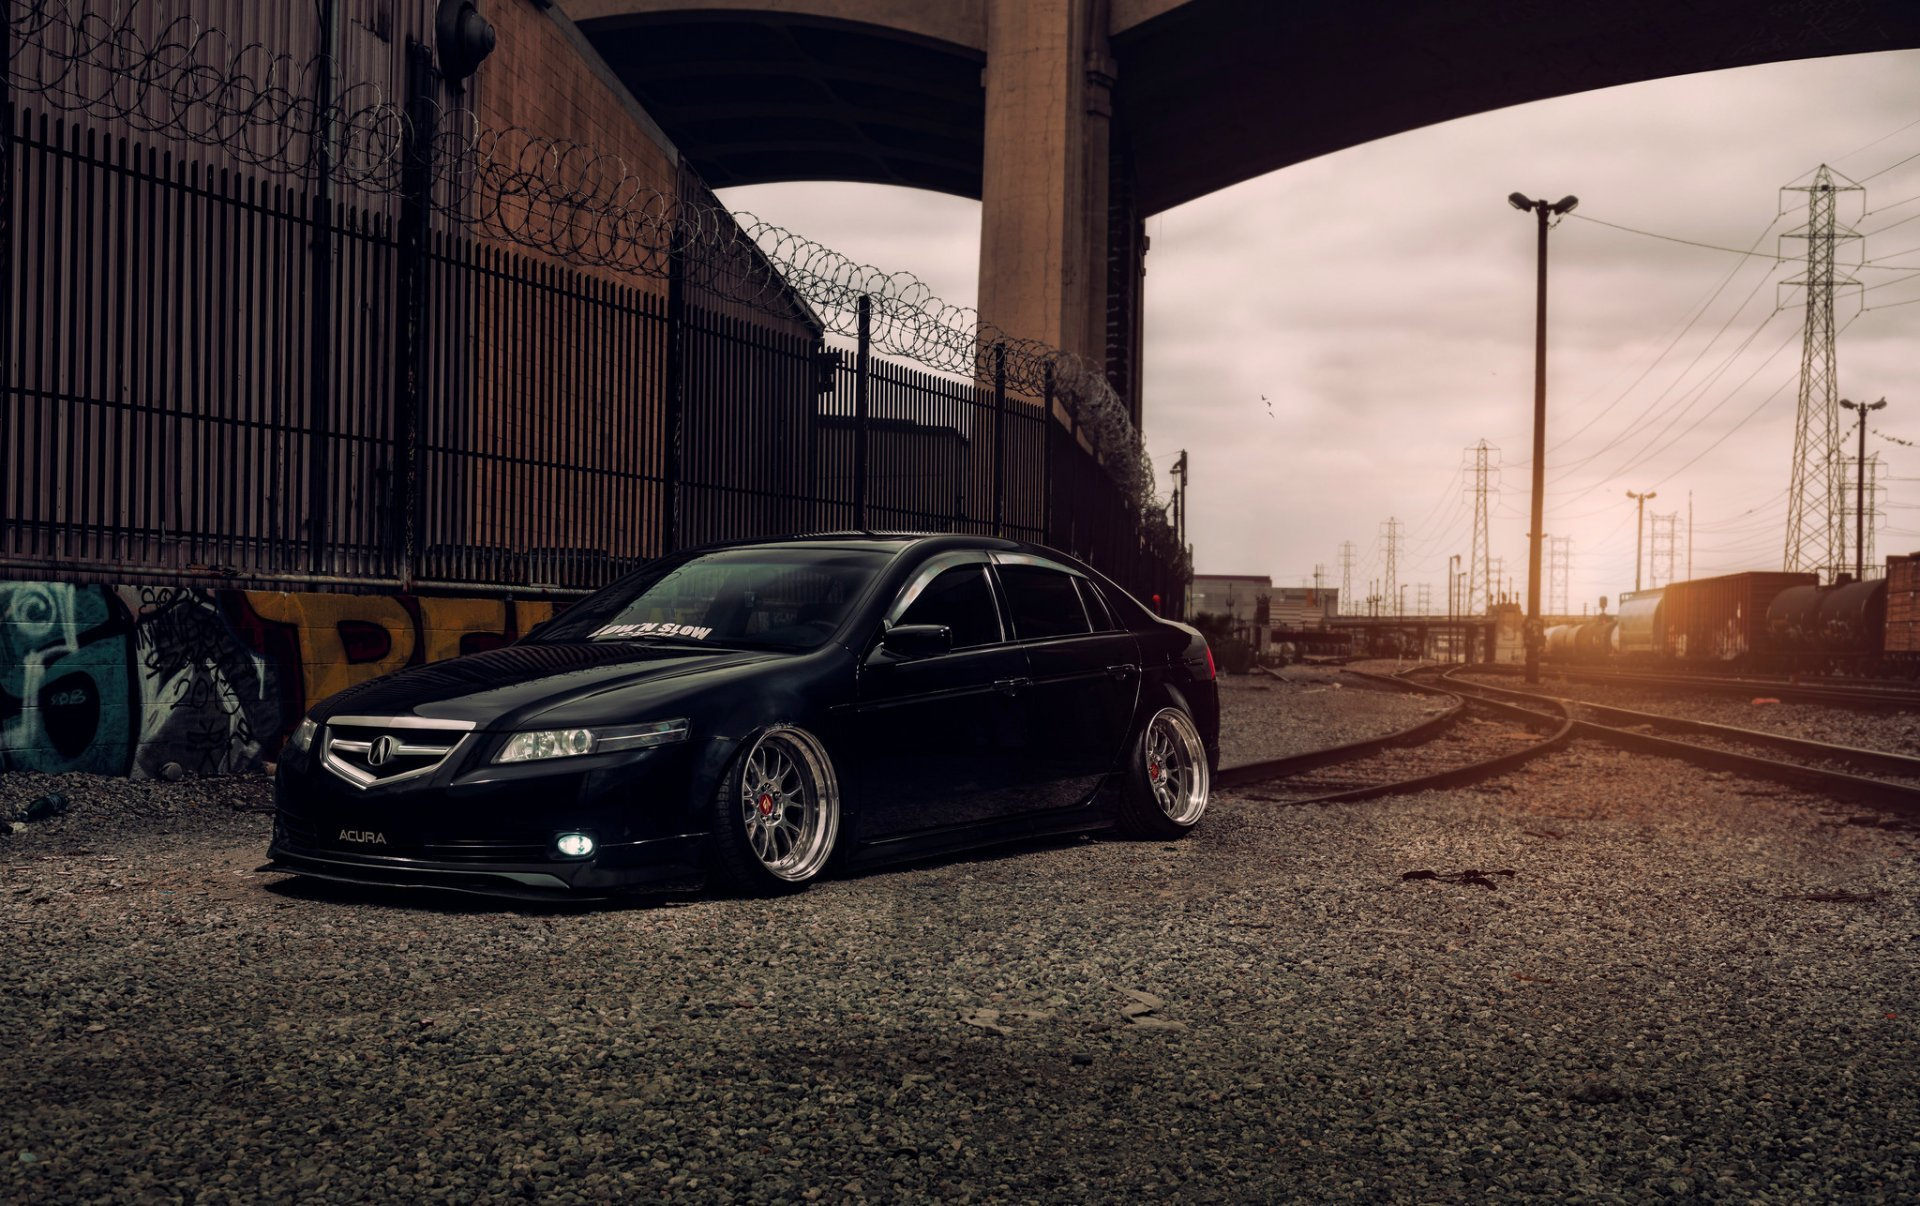 Acura TL Wallpapers PC 32COS2Q WallpapersExpertcom 1920x1206